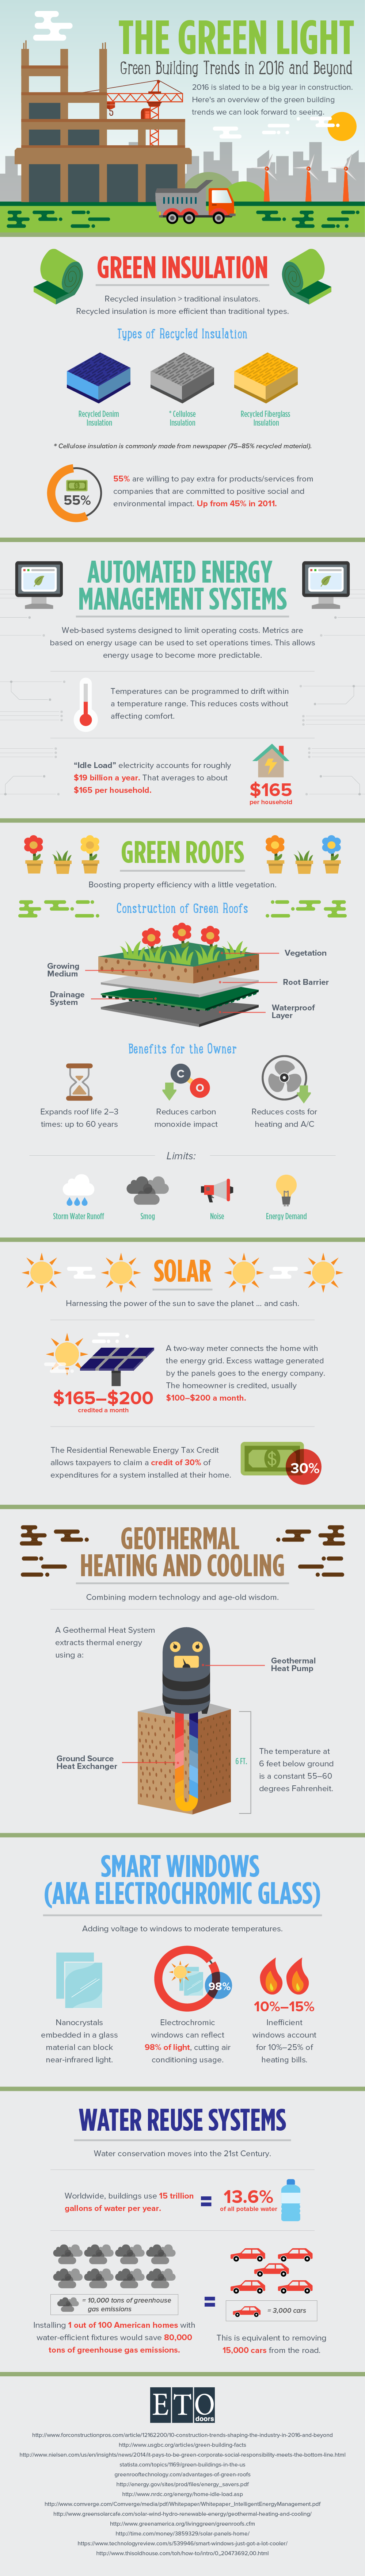 Green Building Trends In 2016 And Beyond Infographic Trends